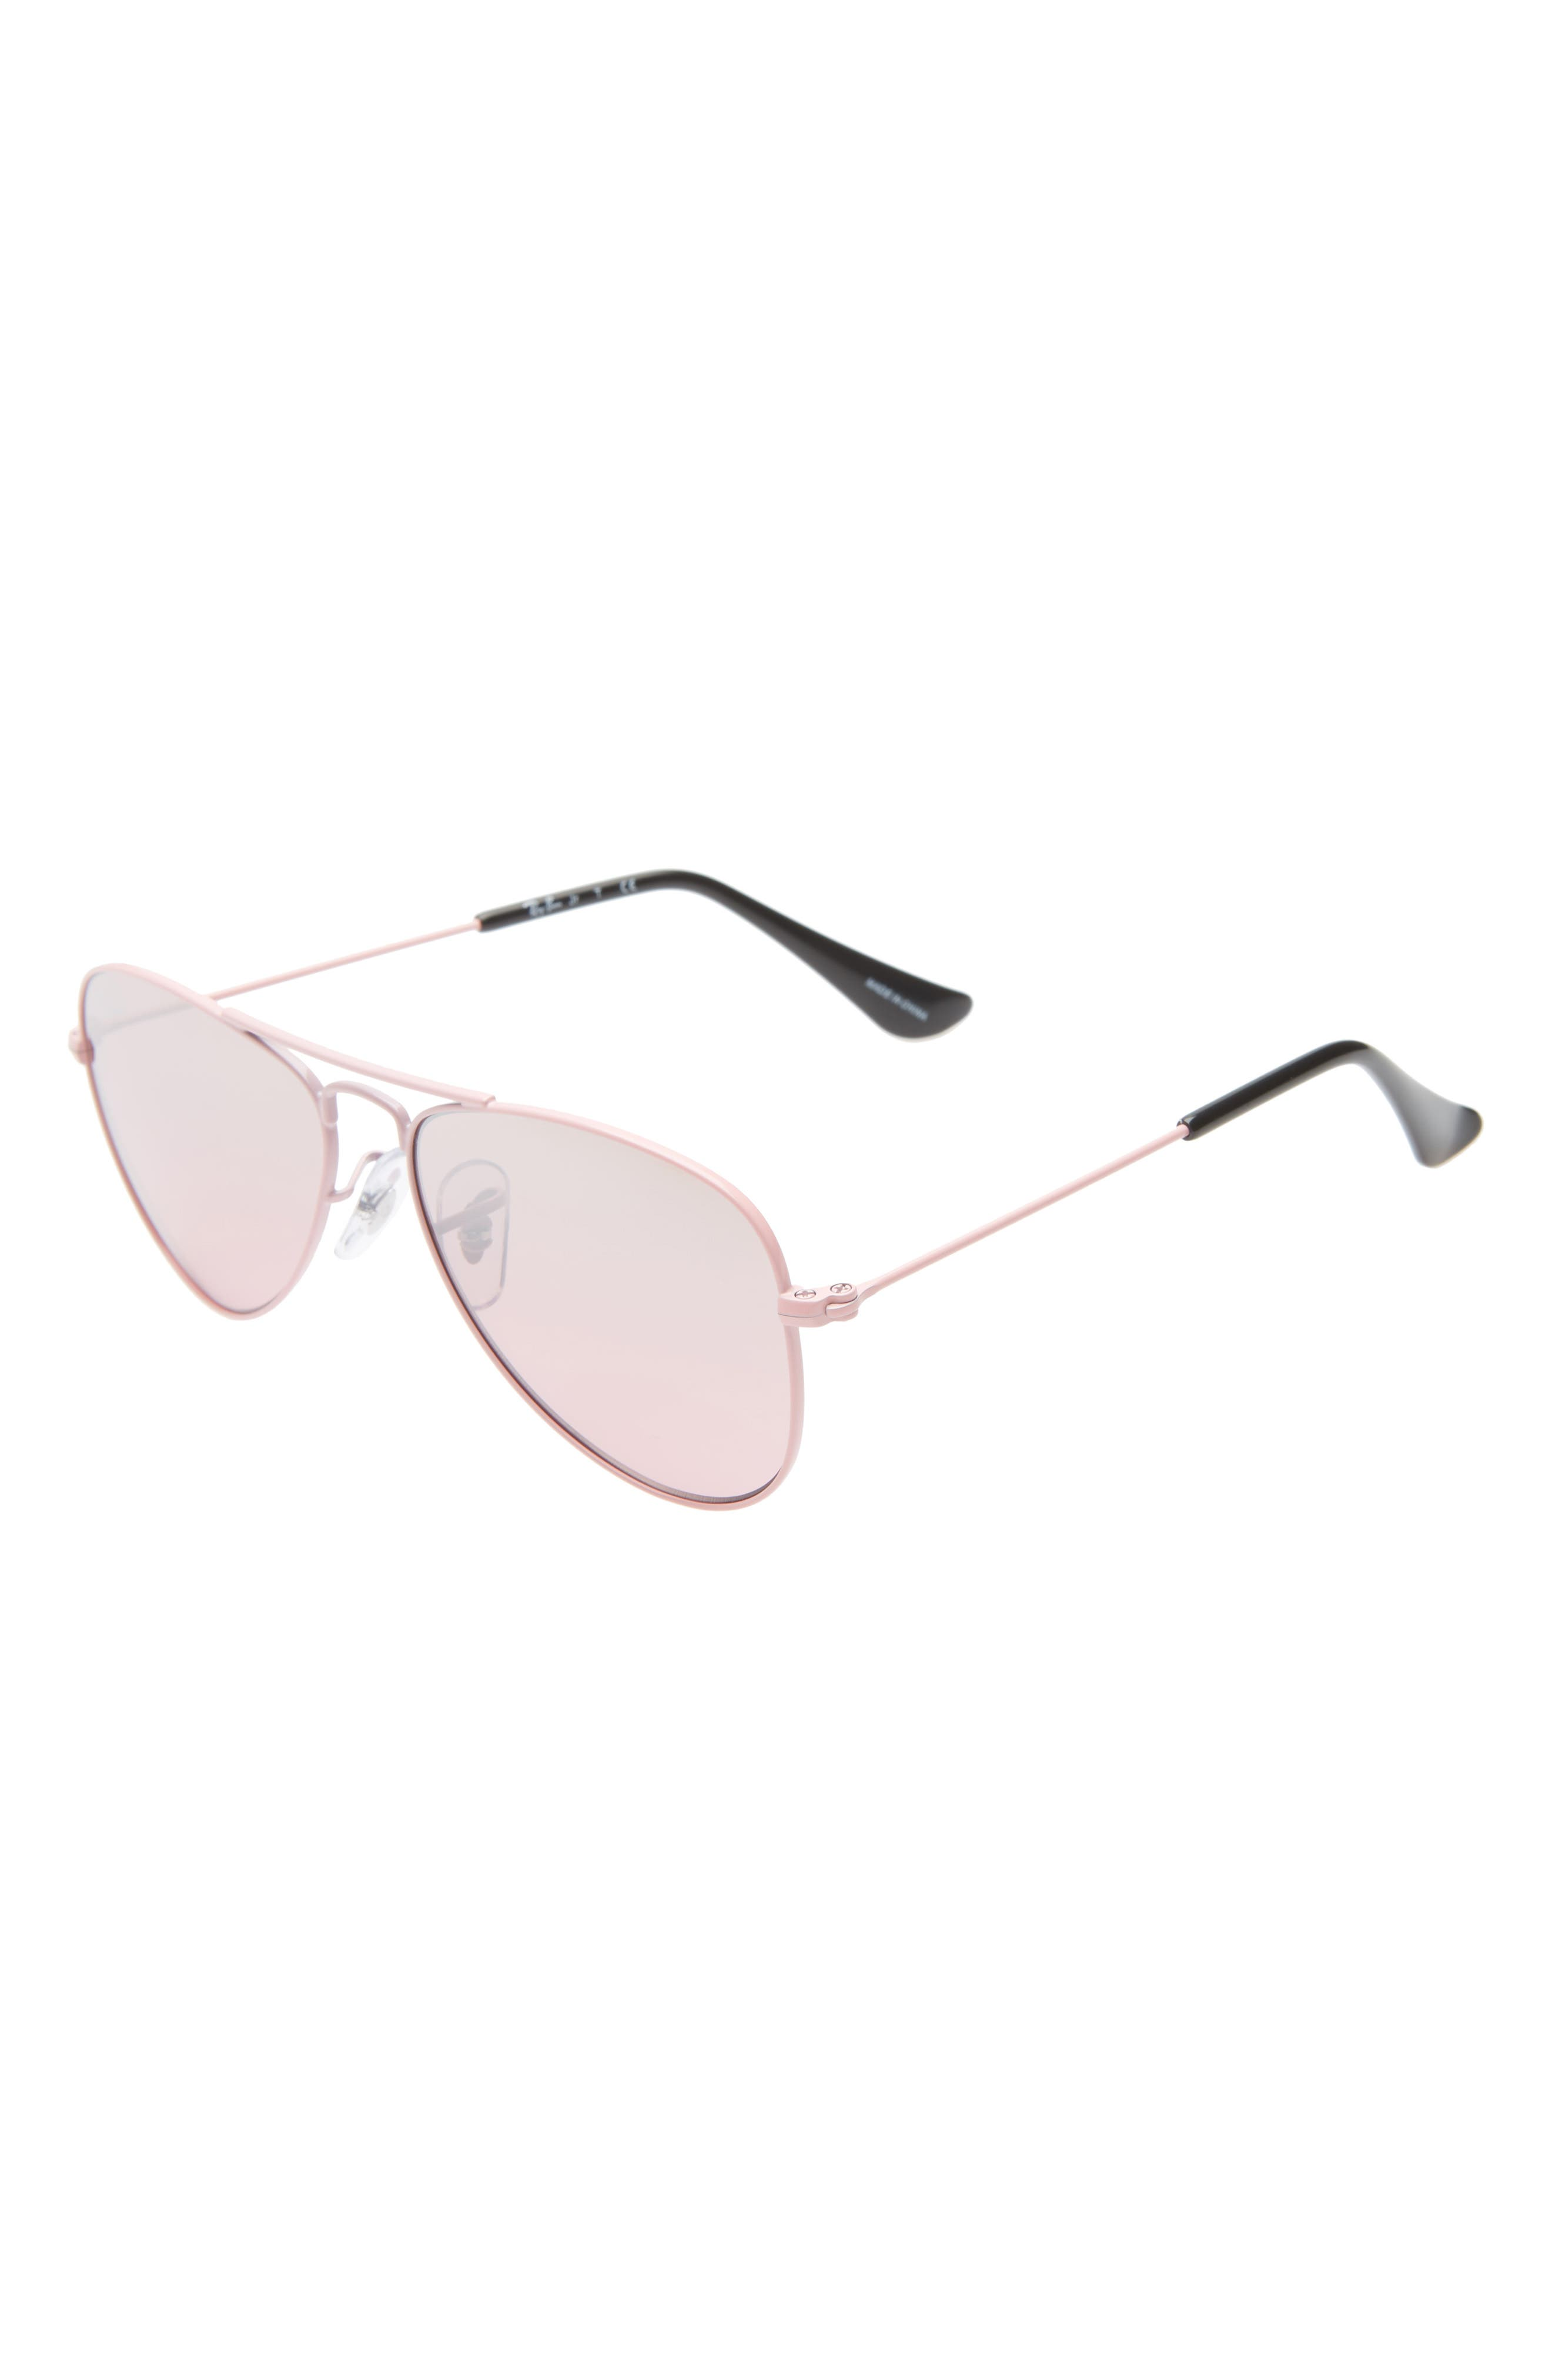 Ray-Ban Junior 50Mm Tinted Aviator Sunglasses - Pink/ Pink Gradient Mirror